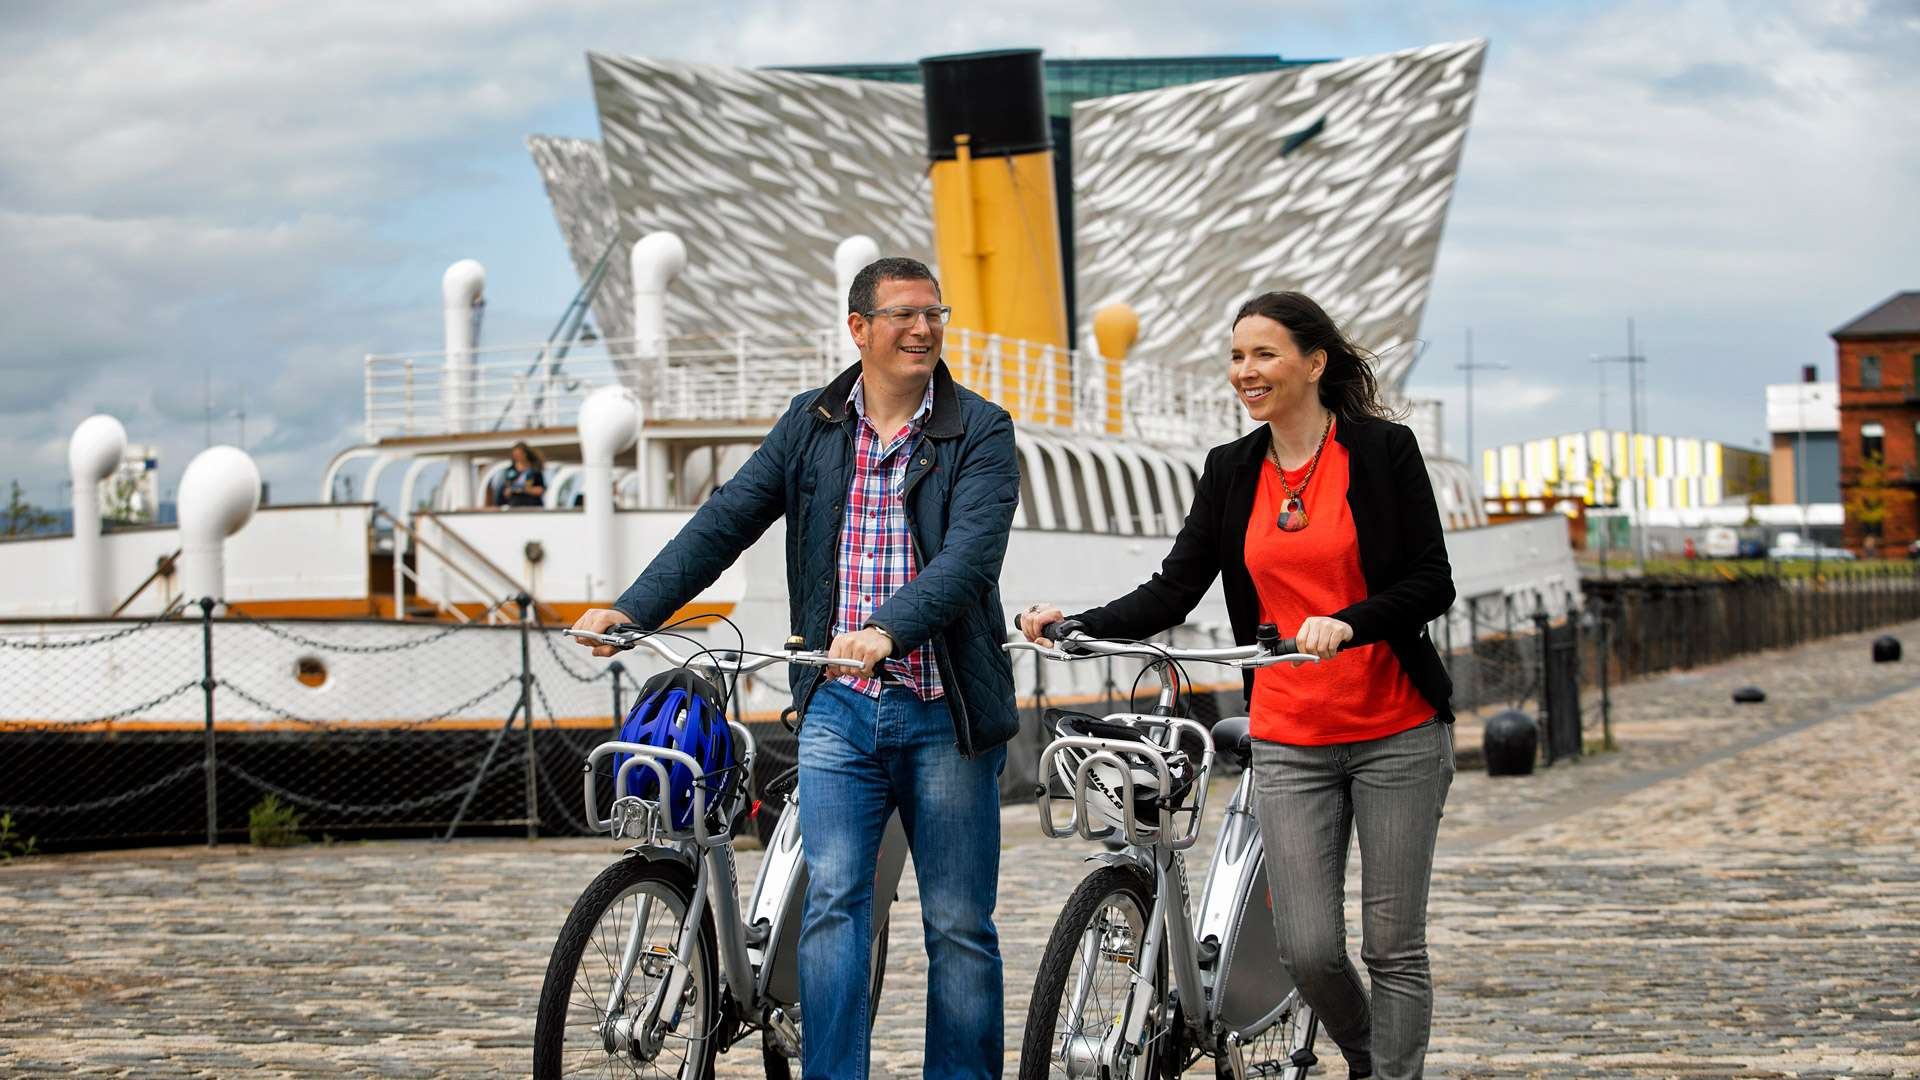 Cycling in Titanic Quarter